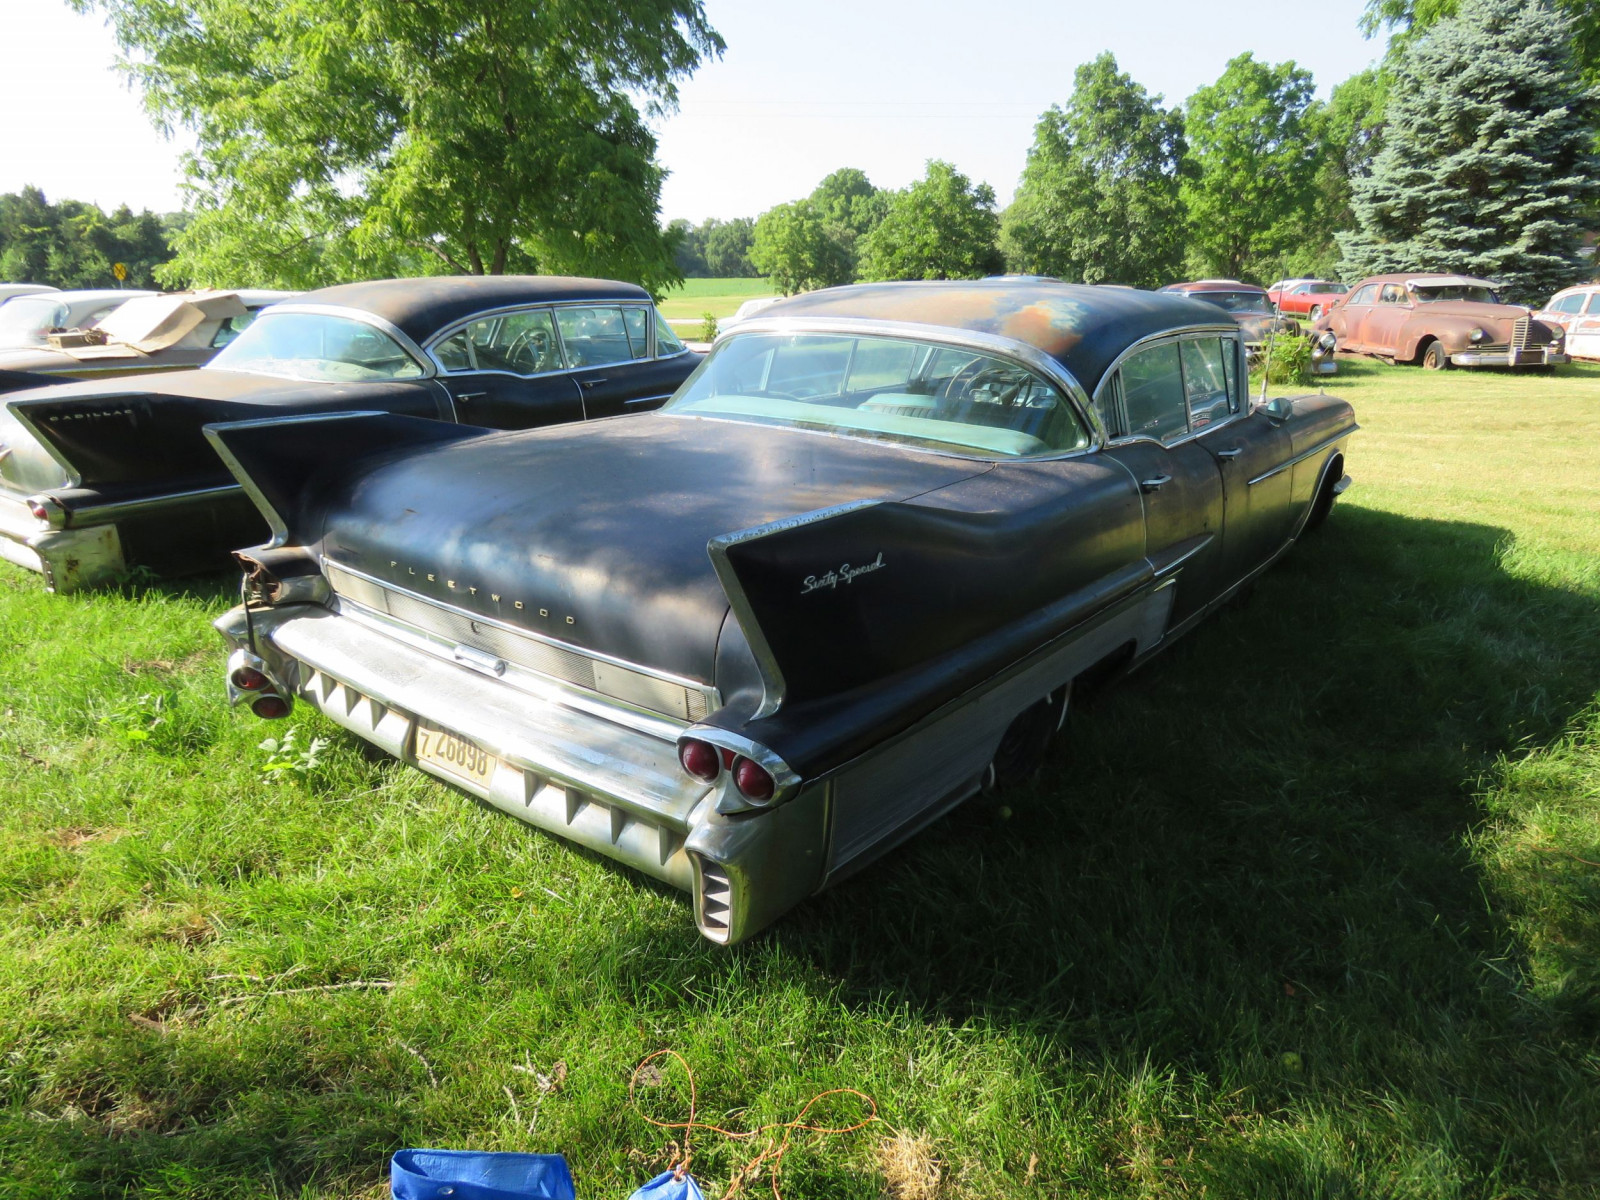 1958 Cadillac Fleetwood 60 Series 4dr HT - Image 5